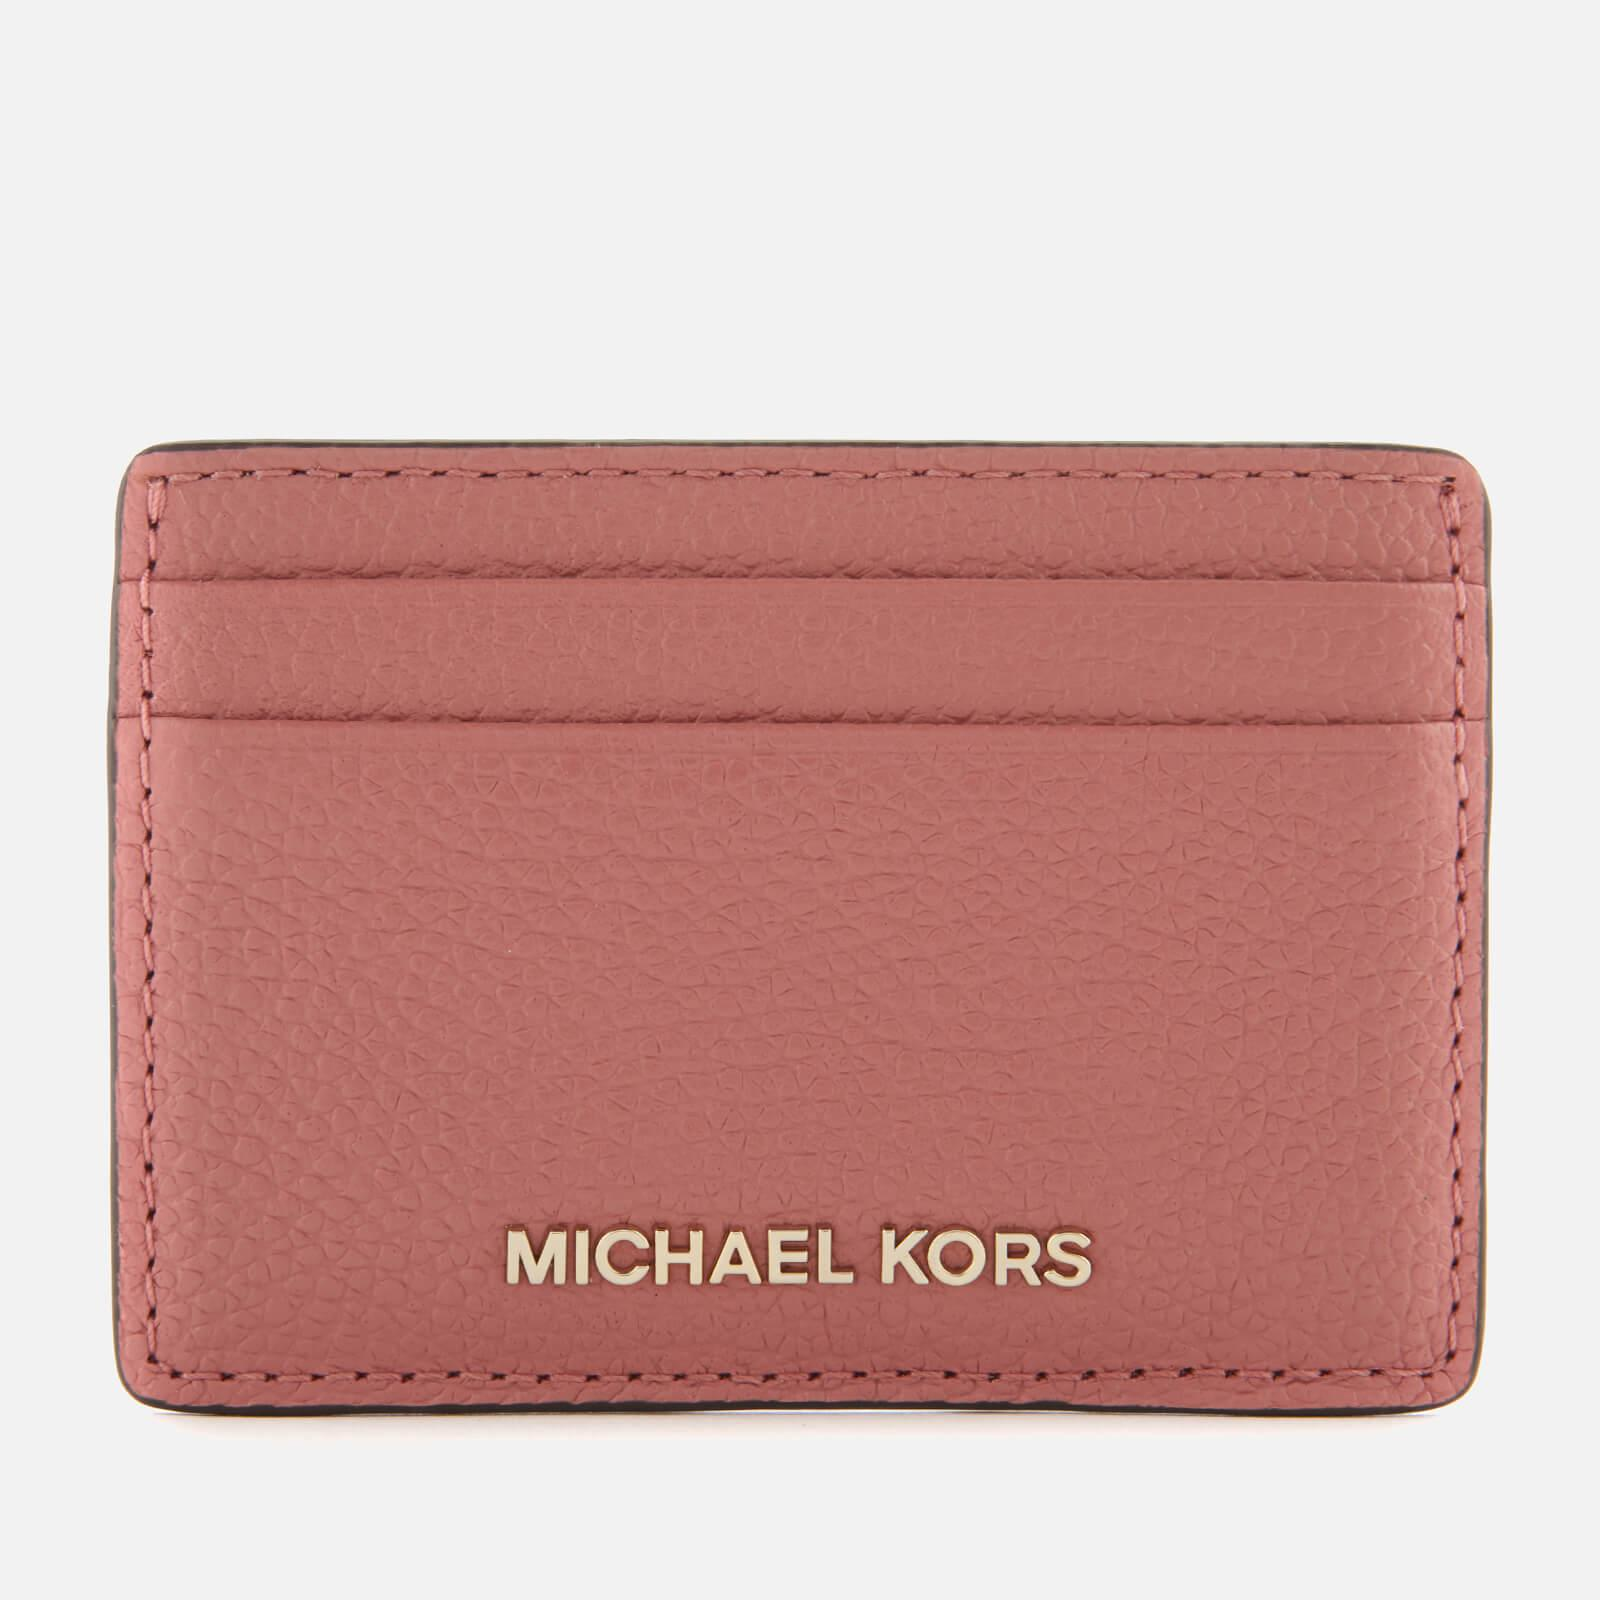 Michael Michael Kors Money Pieces Card Holder in Pink - Lyst bc5e188399753